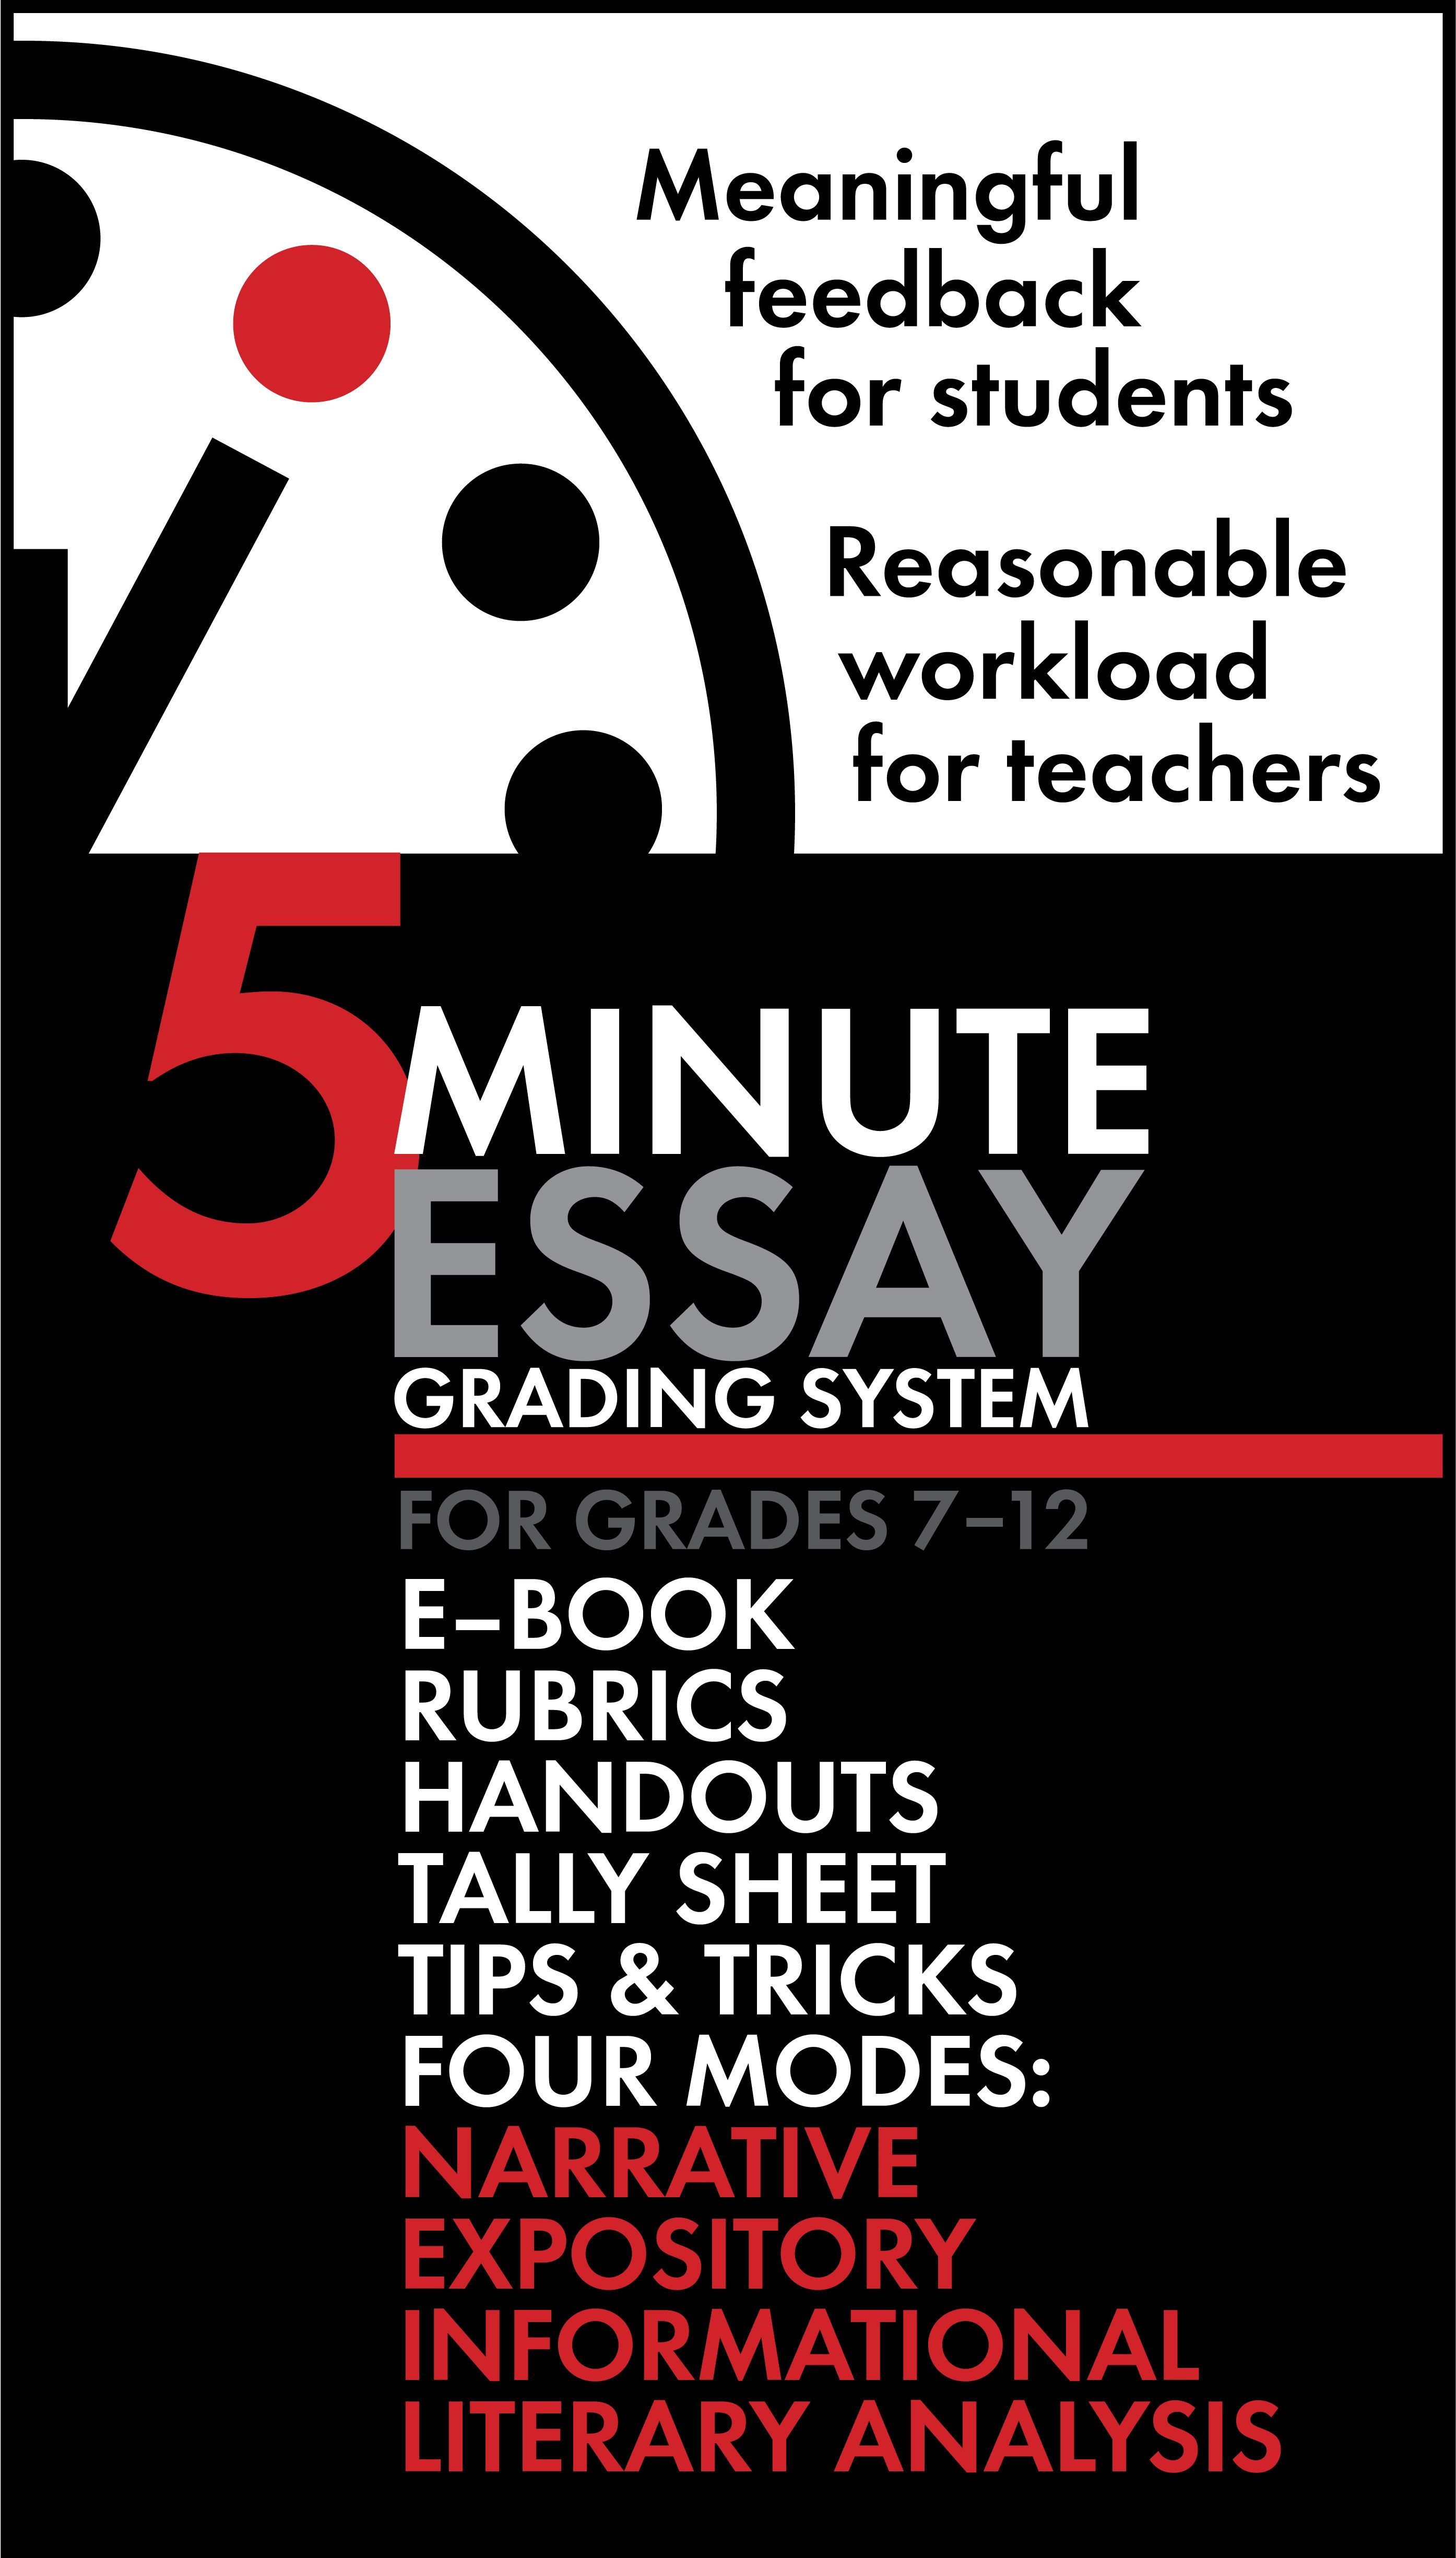 007 Exhausted by Essays? 5Minute Essay Grading System